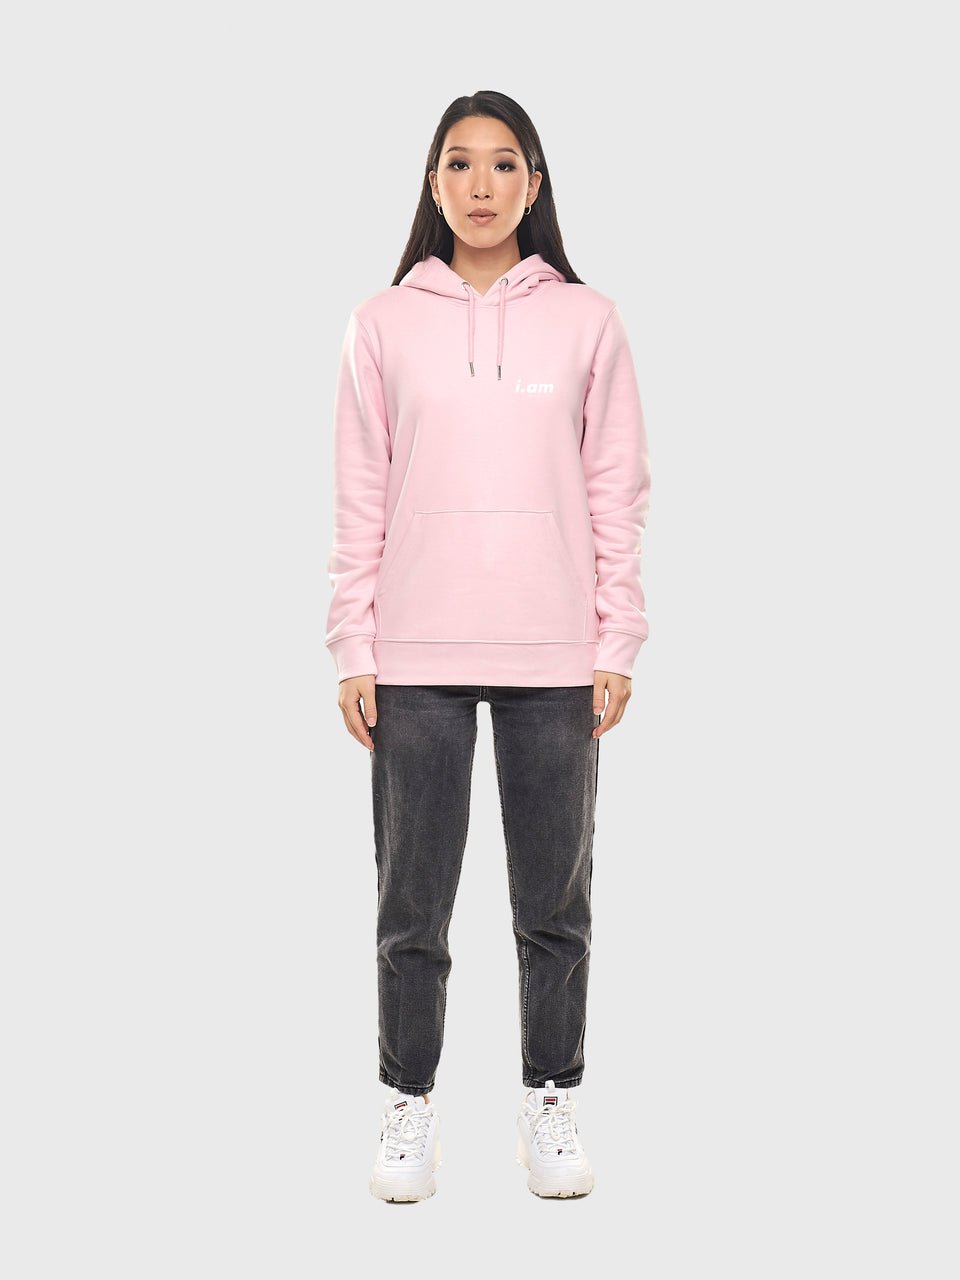 Made in London - Pink - Unisex pull over hoodie